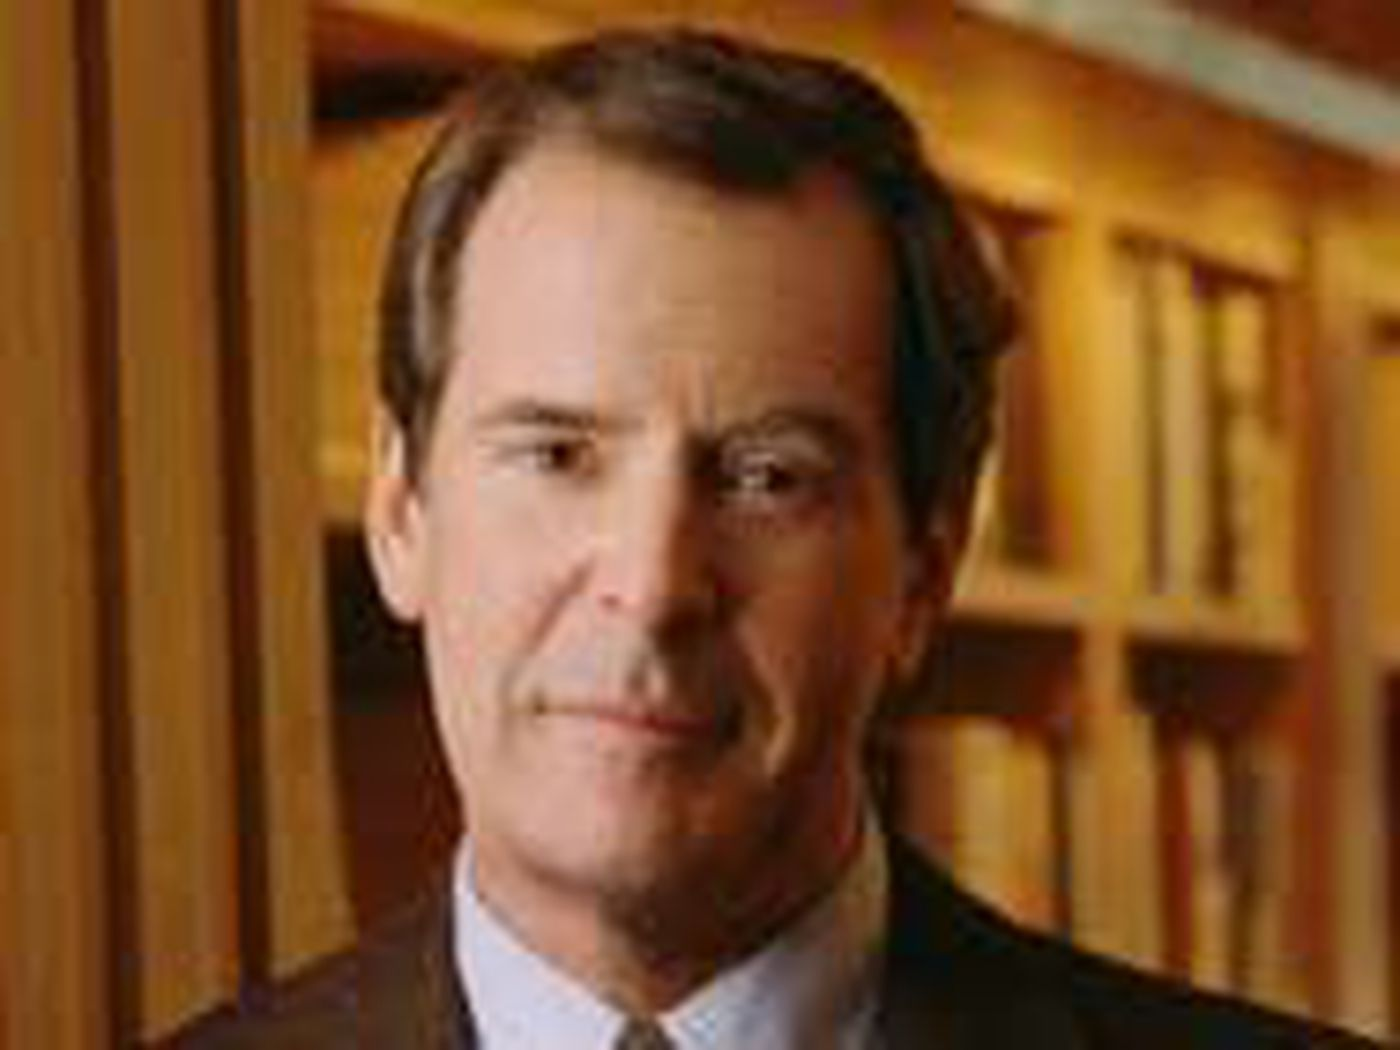 ABC News Anchor Peter Jennings Dead At 67